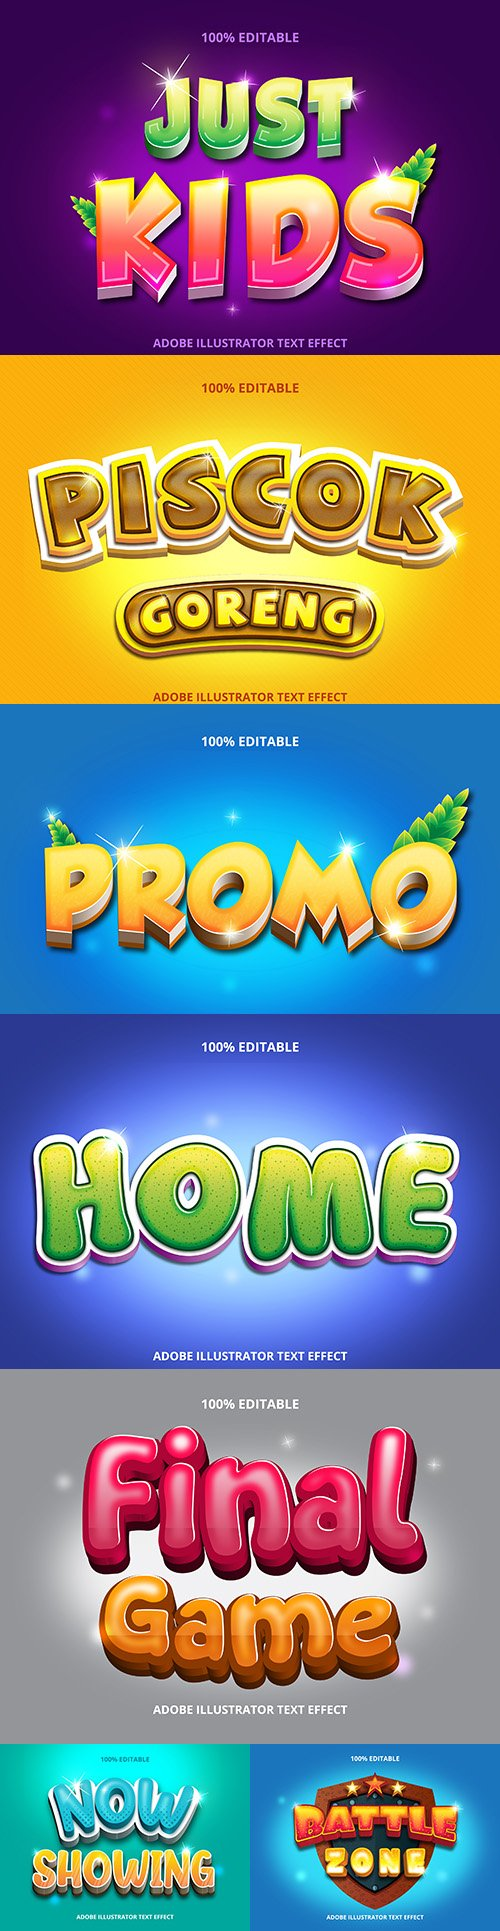 Editable font effect text collection illustration design 45